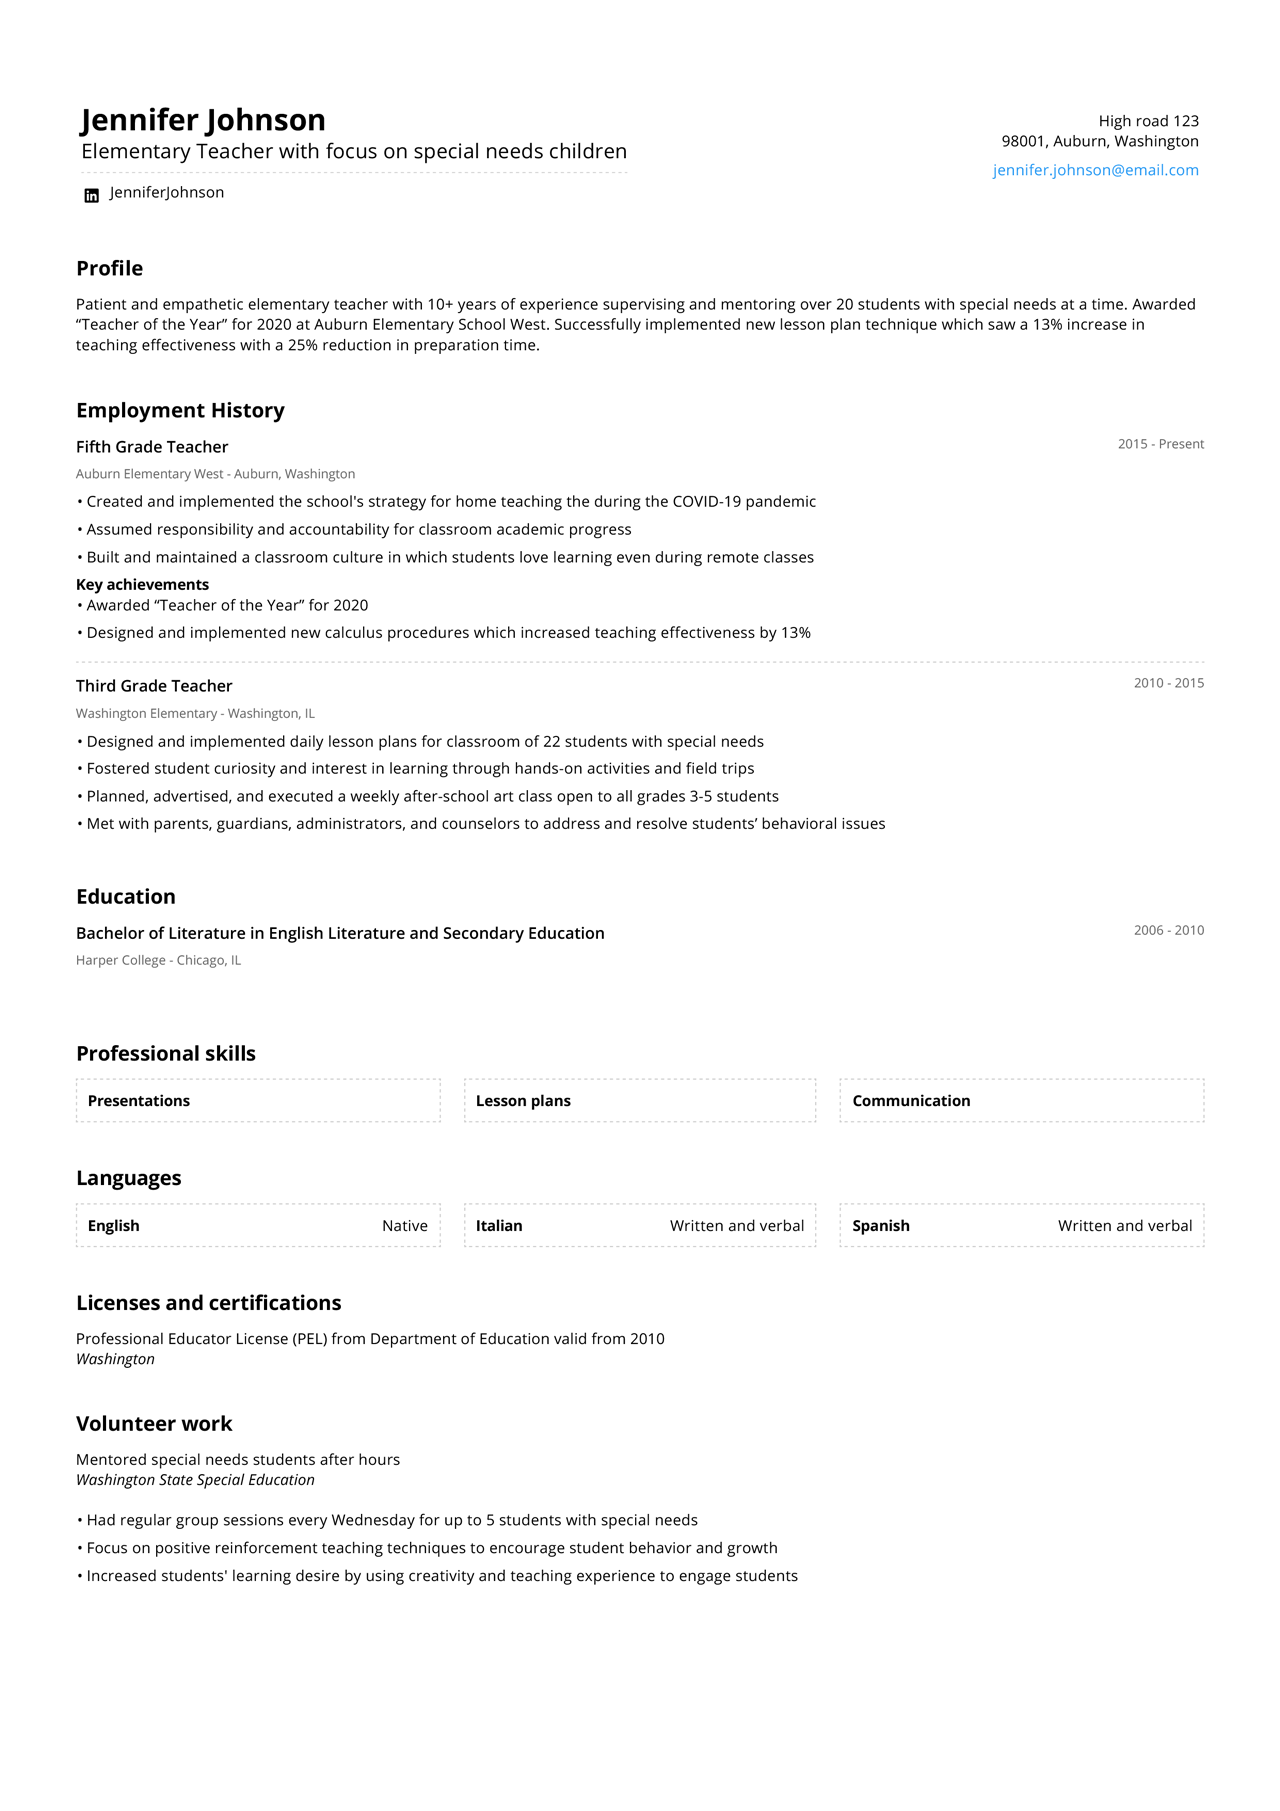 Image of an elementary school teacher resume with more than 10 years of experience